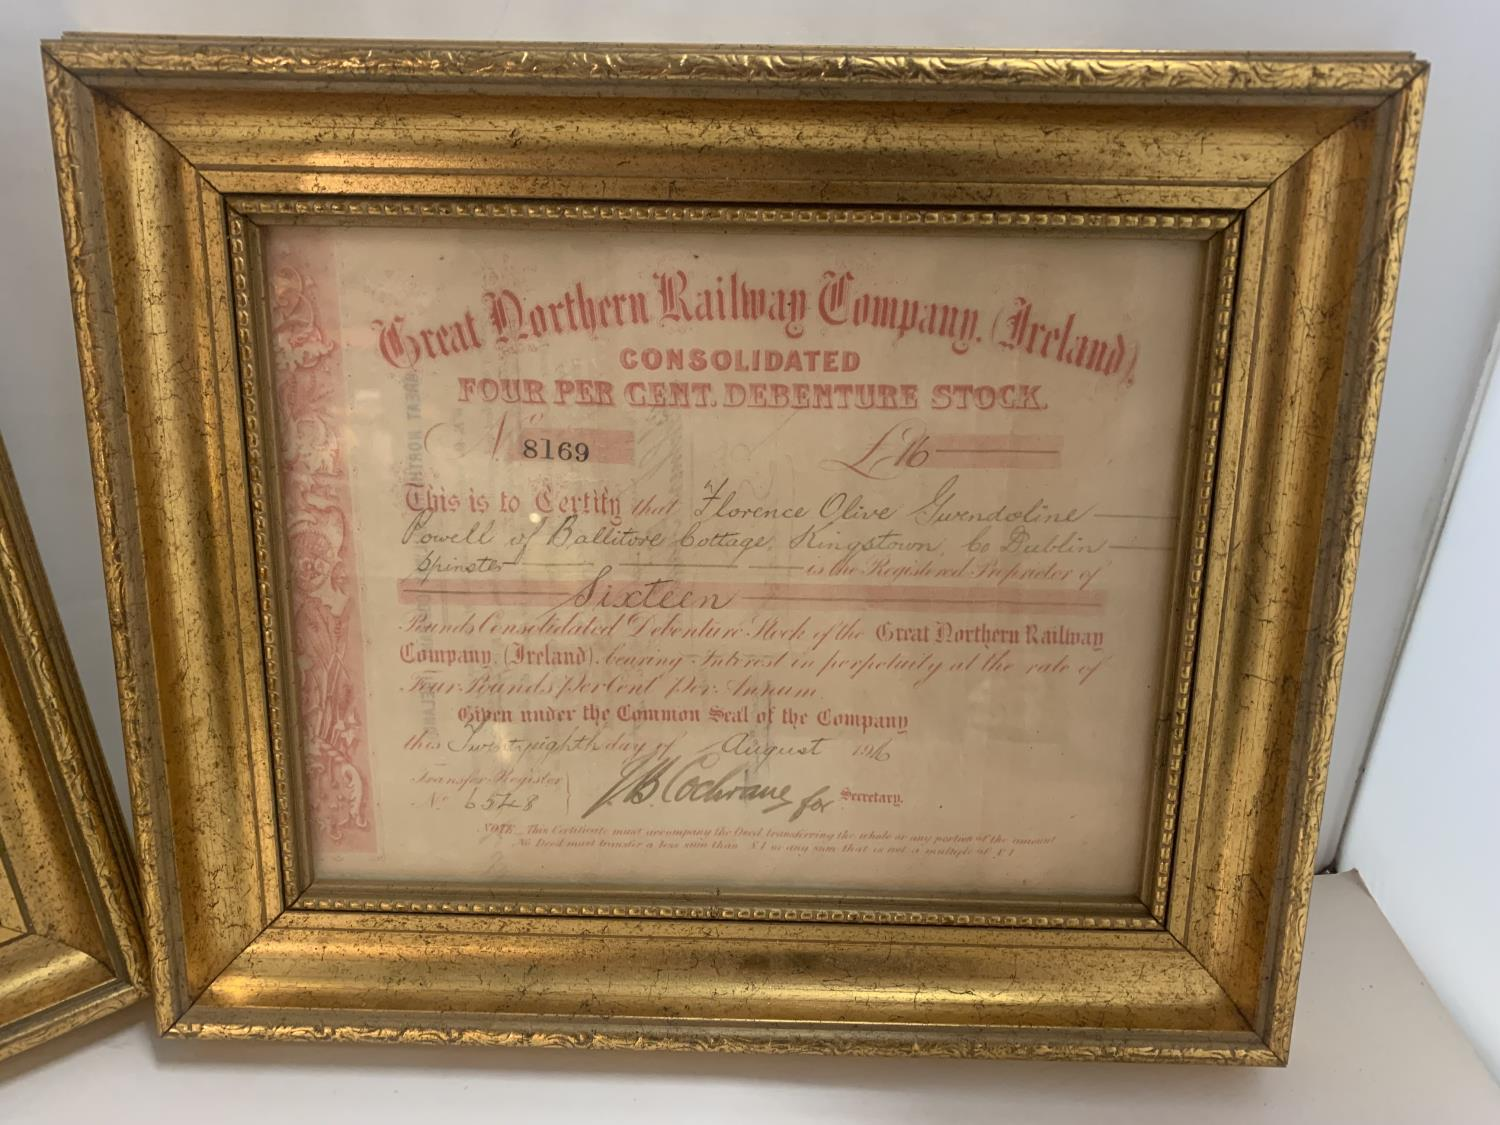 TWO GILT FRAMED GREAT NORTHERN RAILWAY SHARES CERTIFICATES - Image 6 of 6